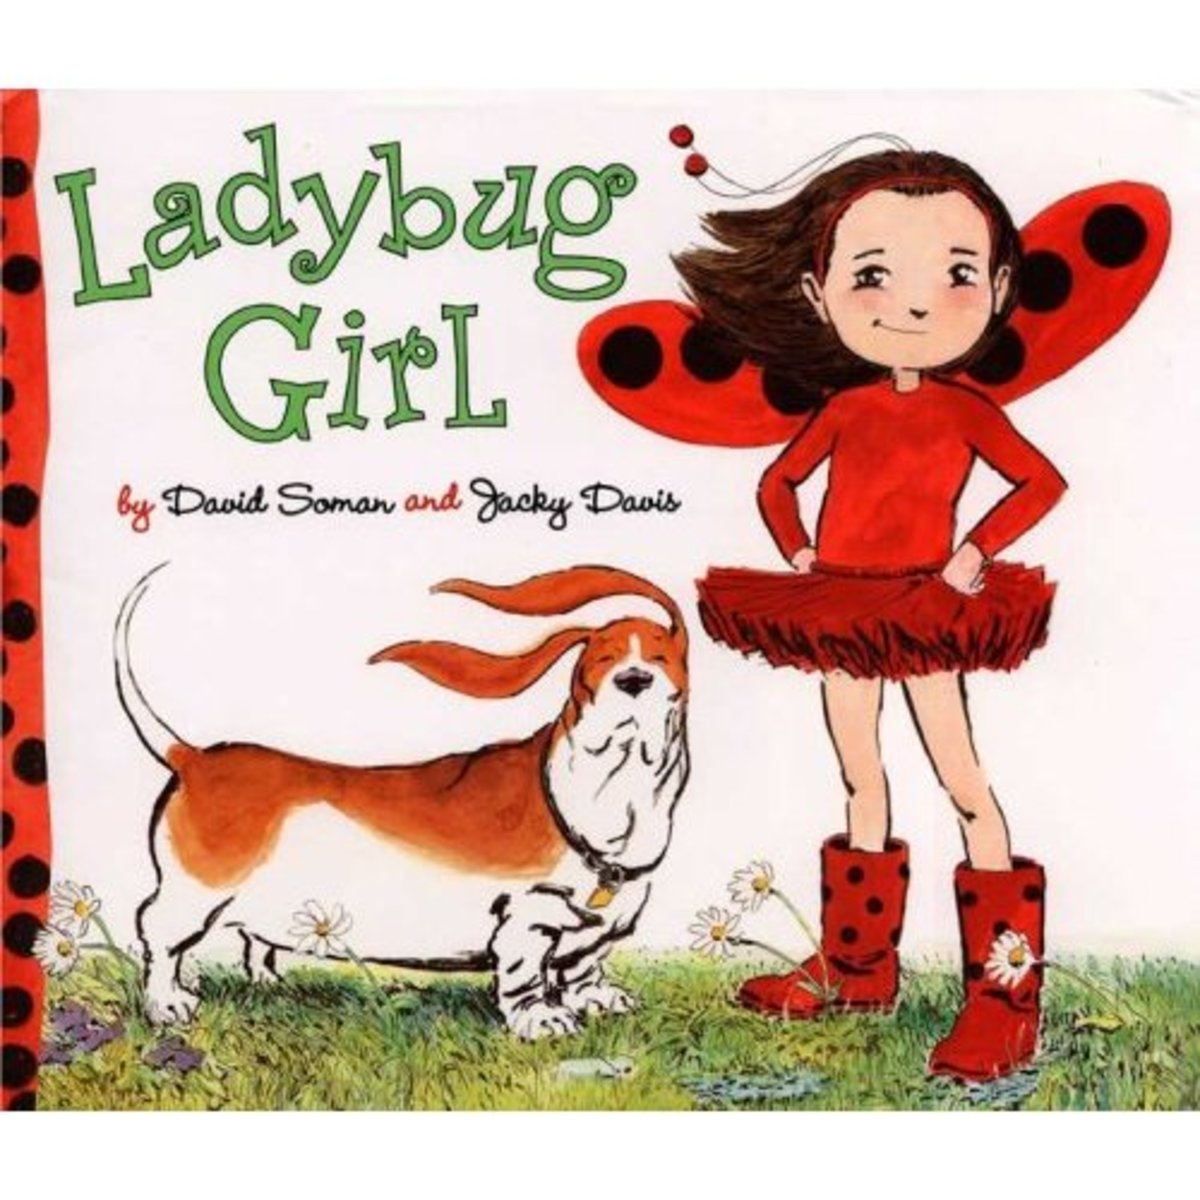 Ladybug Girl by David Soman is a recent bestselling children's book that pairs well with the Ladybug Game for gift giving.